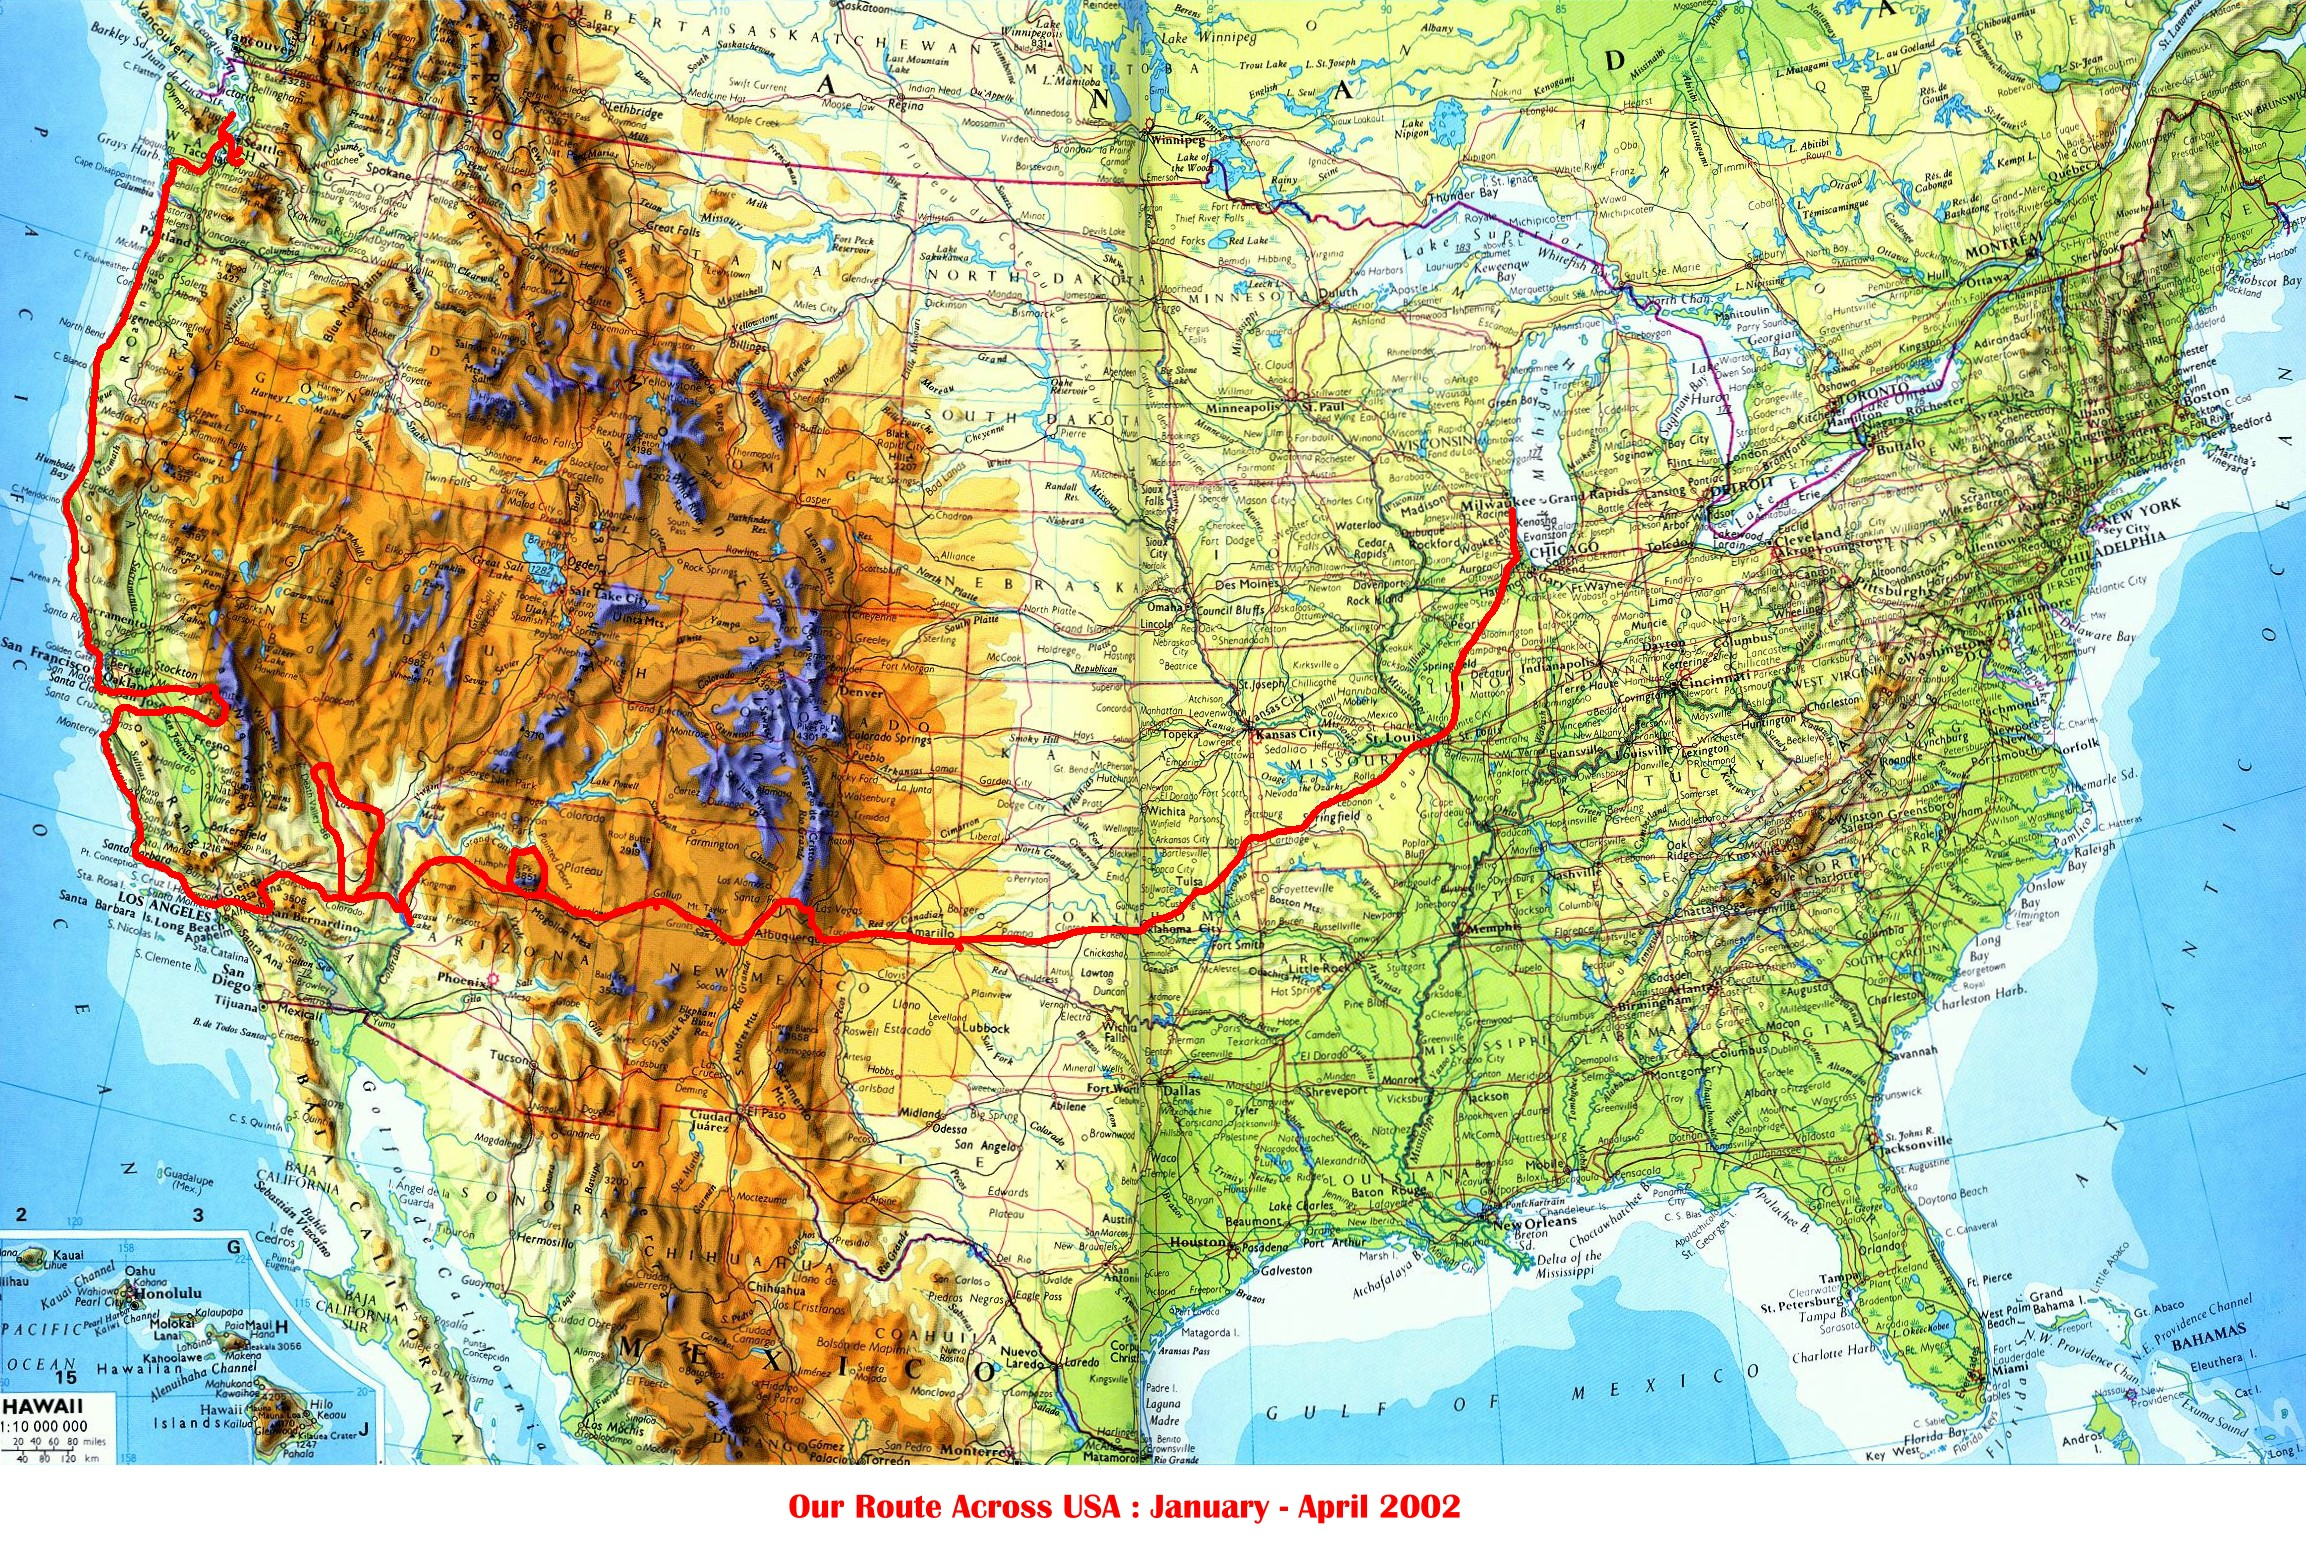 Route 66 and the West Coast USA